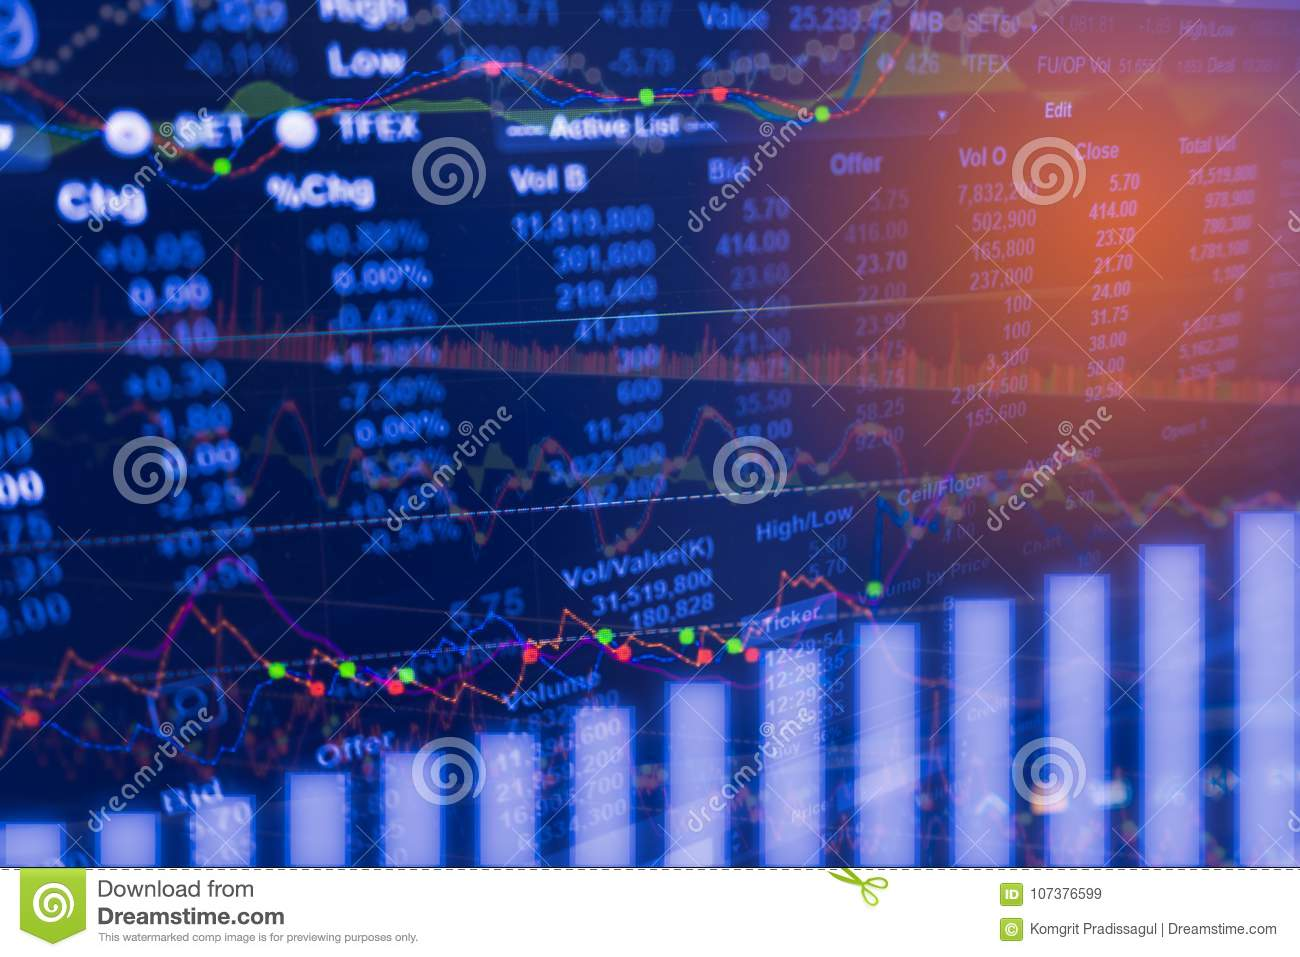 Digital data indicator analysis on financial market trade chart on LED. Concept Stock data trade.